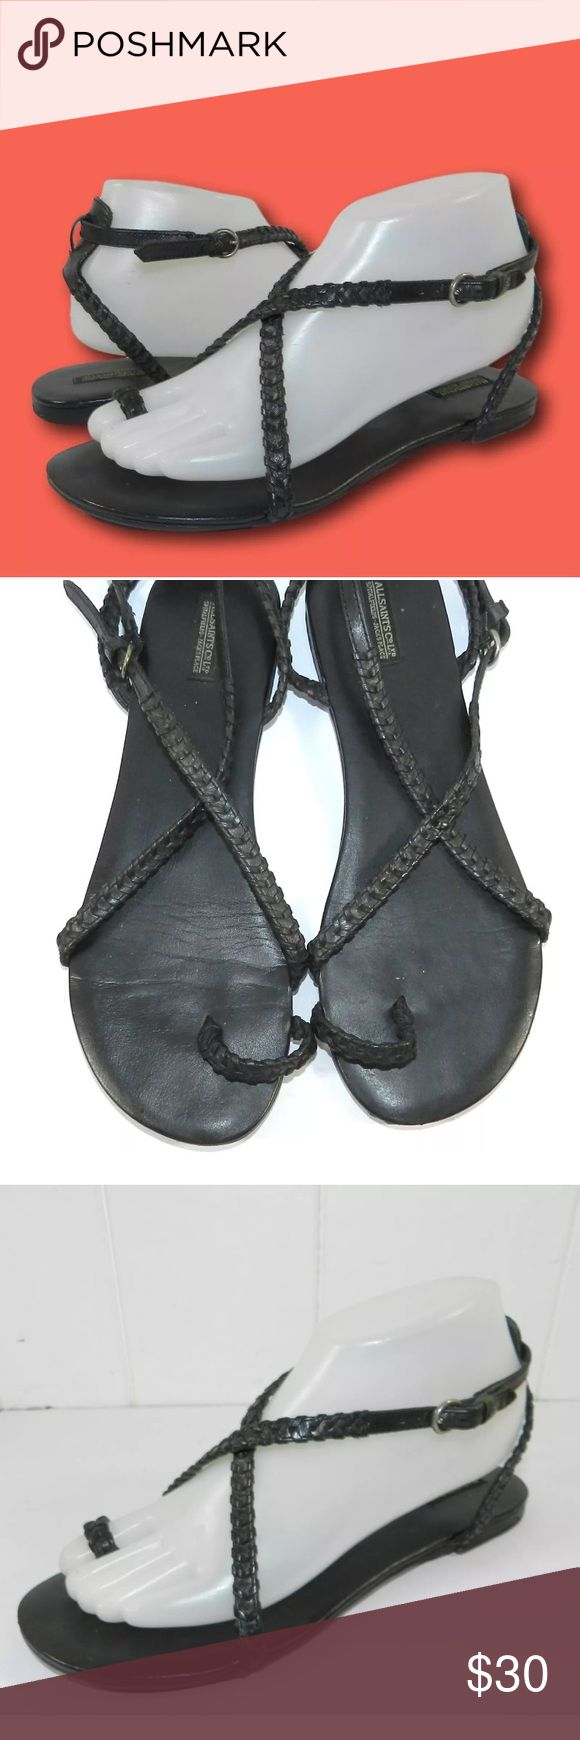 """ALLSAINTS Black Braided Leather Sandals This ankle strap sandal by AllSaints features a braided leather design and a flat heel.     Leather upper / Leather soles.   Sz 39 / US 8-8.5.  Bottom of soles measure approx. 10"""" long and 3 5/8"""" wide at widest part.   Some scratches/wear to footbed and wear to soles apparent.  Please see all photos for further indication of wear and condition. All Saints Shoes Sandals"""